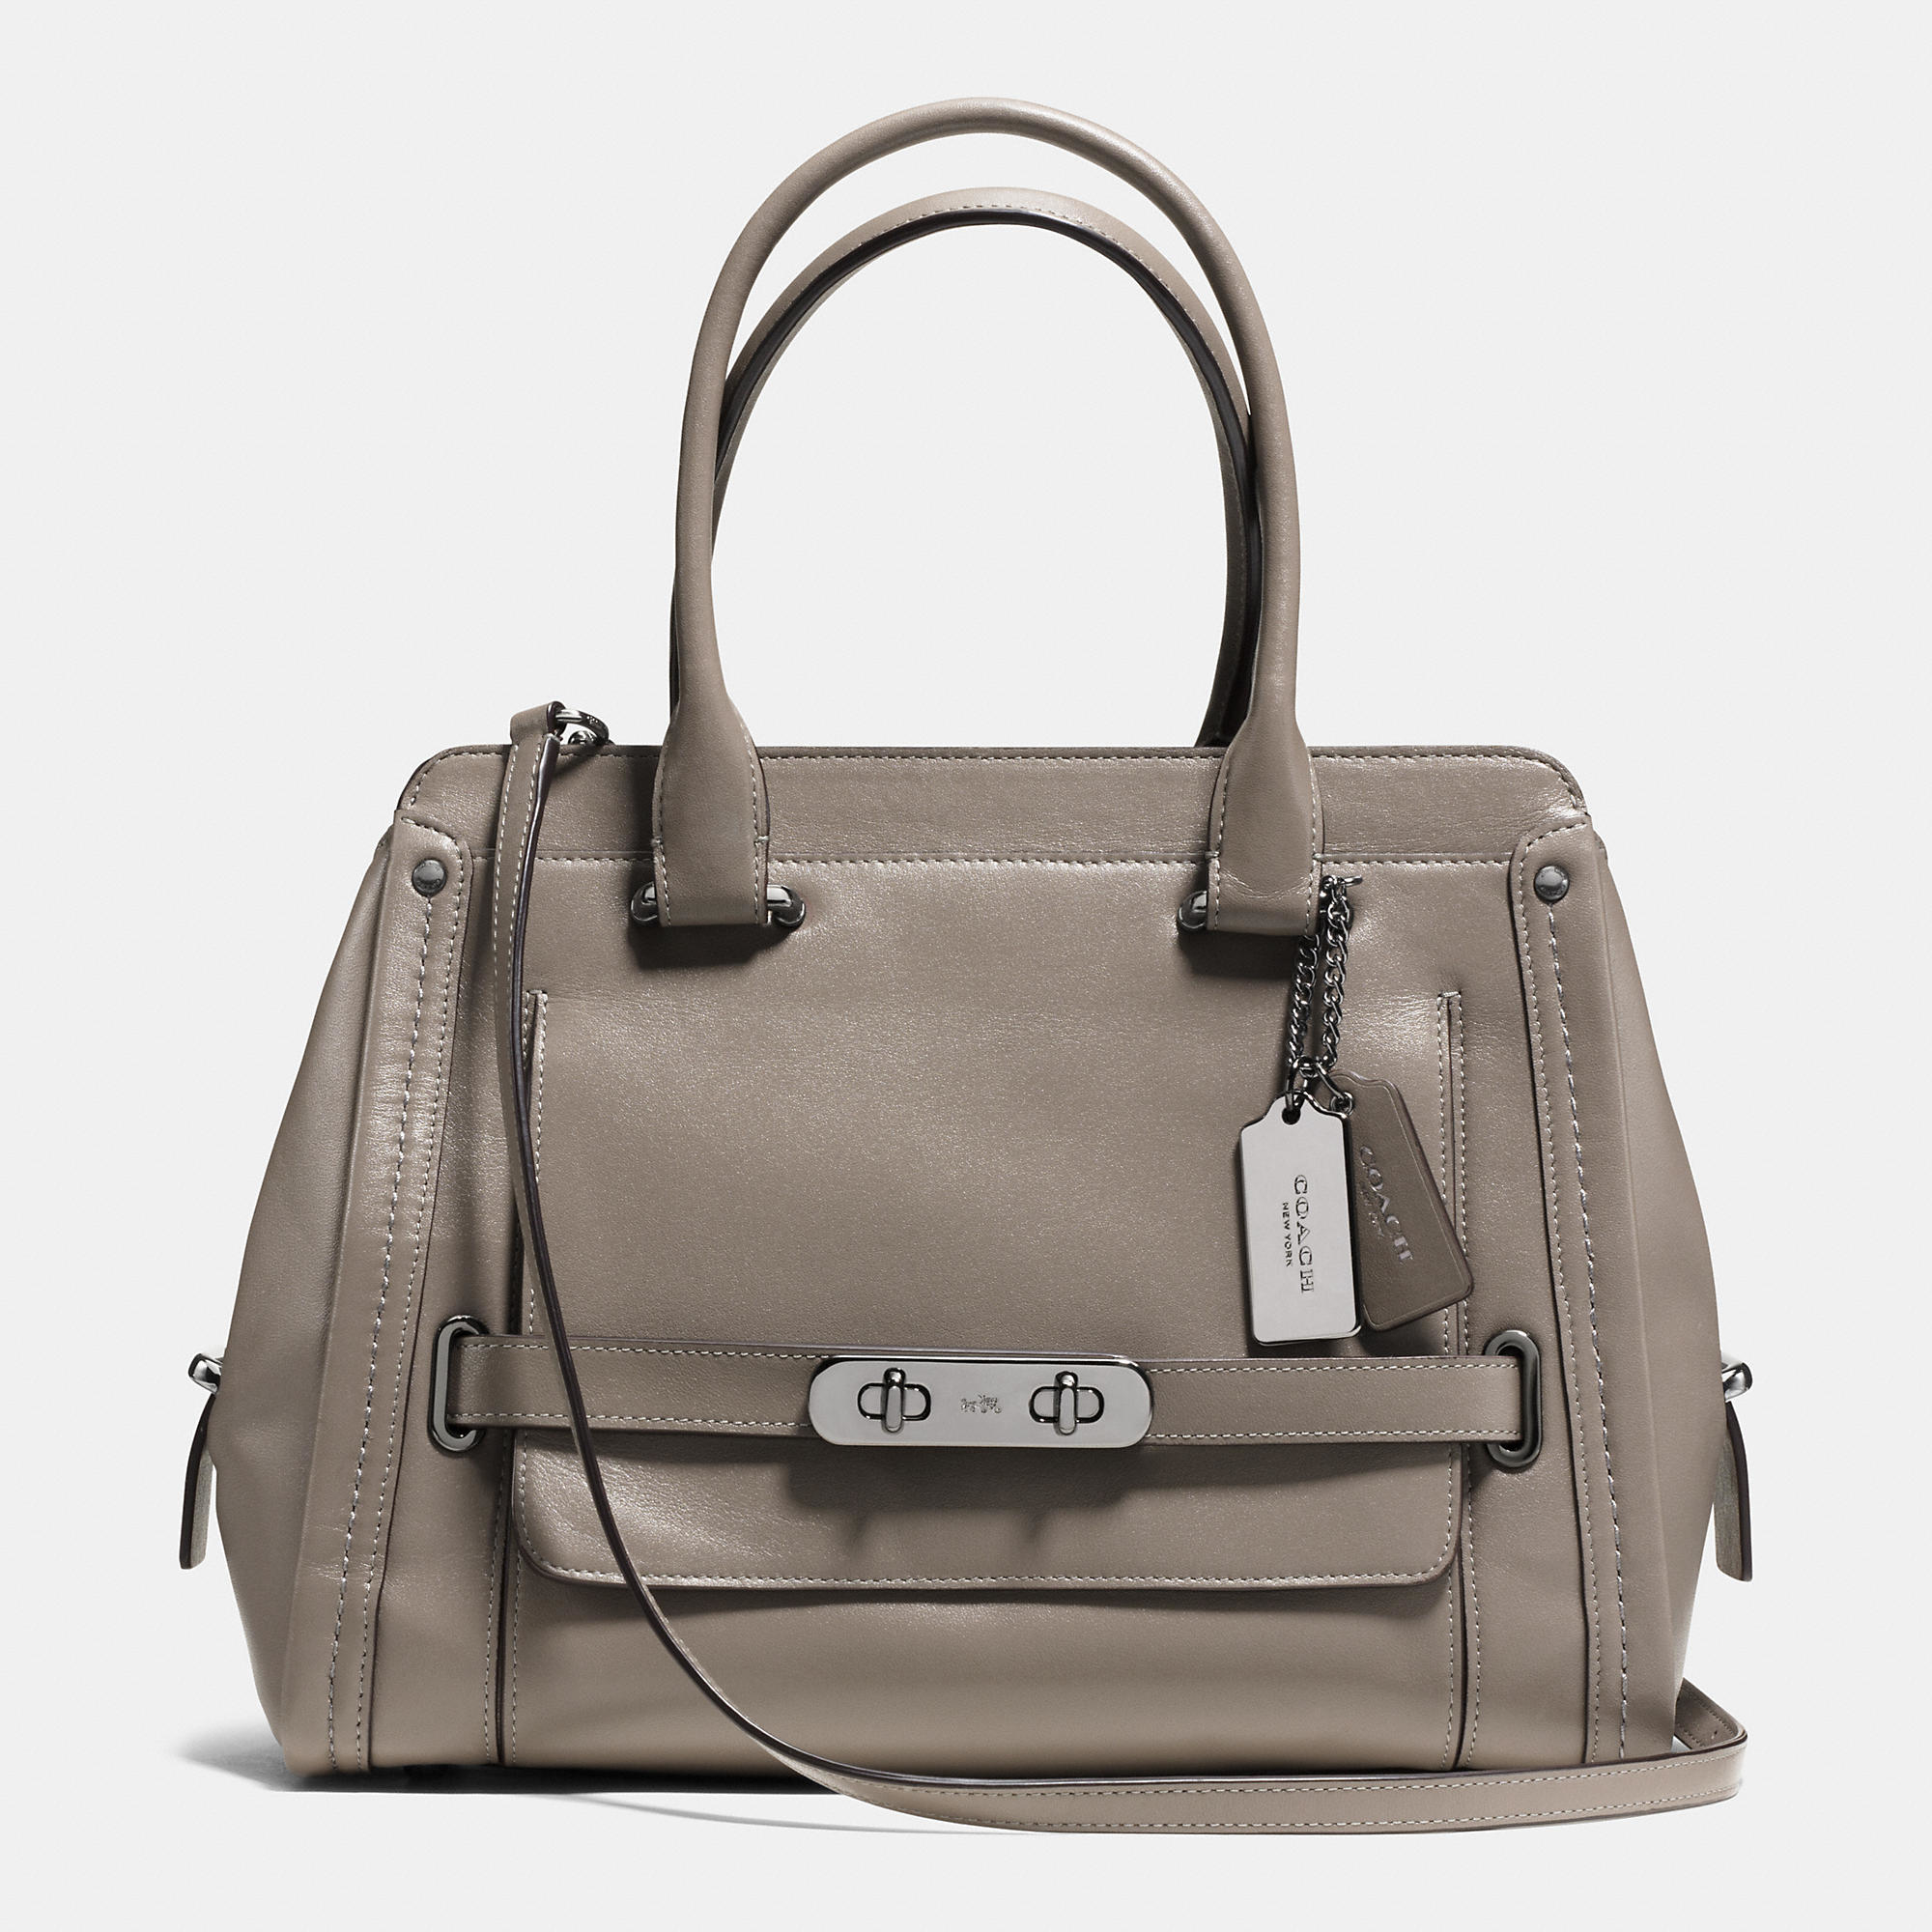 Lyst Coach Swagger Frame Satchel In Calf Leather In Metallic